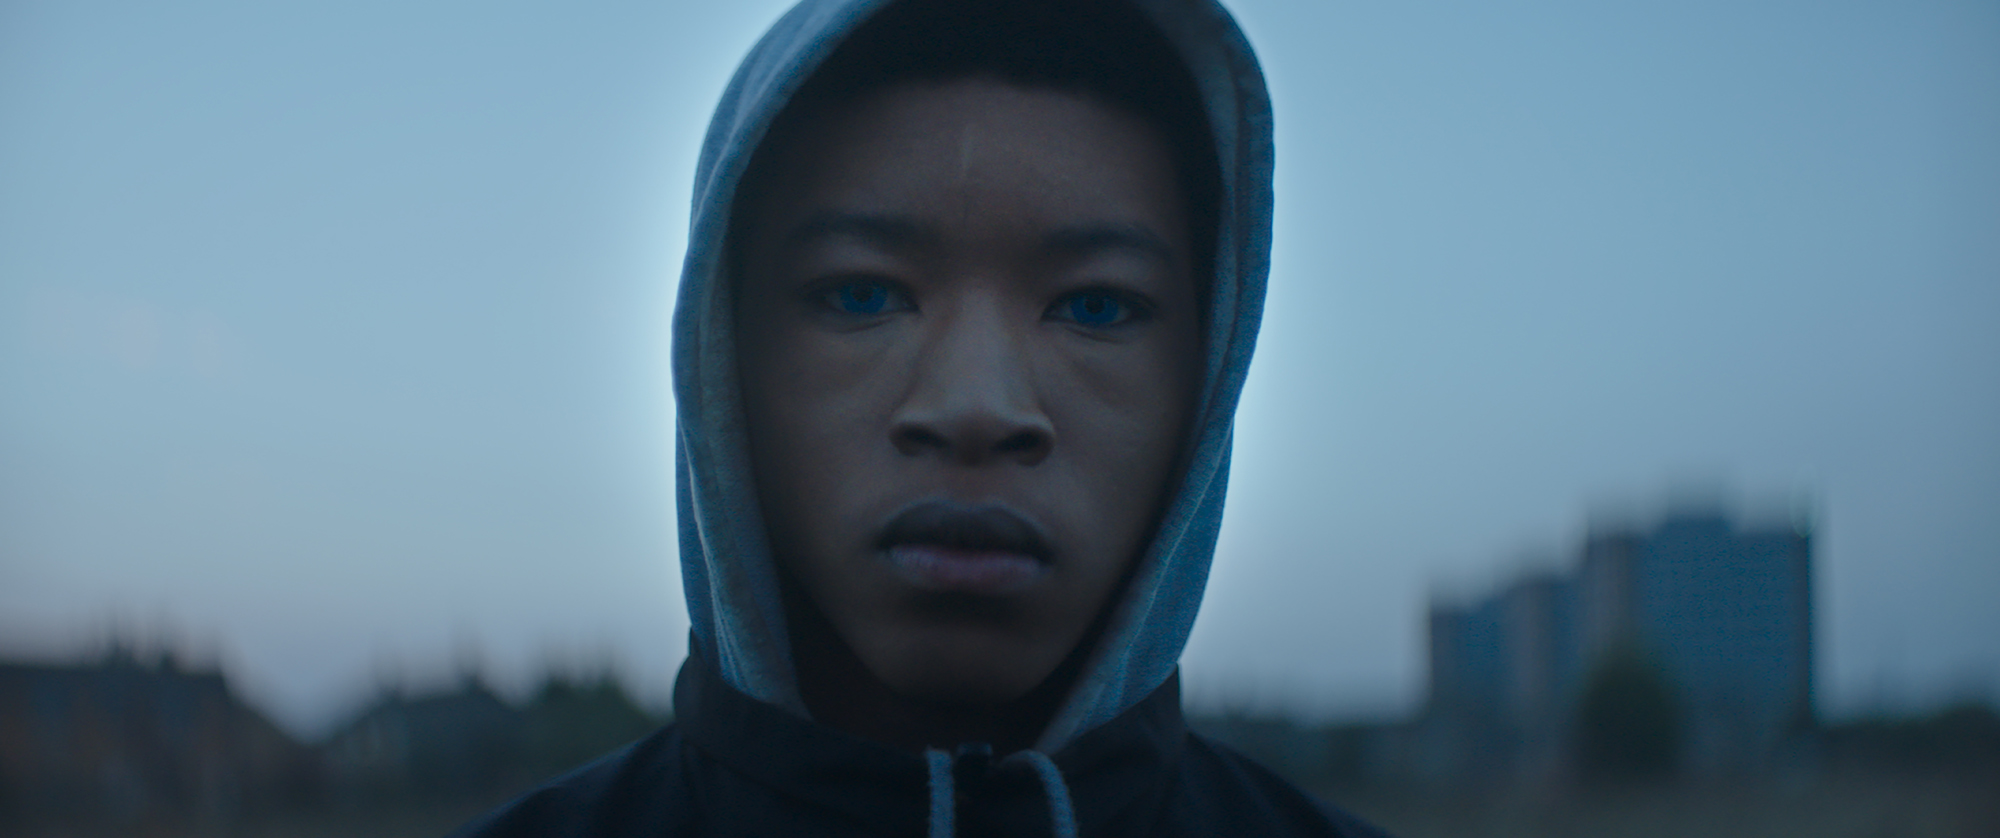 Ed Perkins' film 'Black Sheep,' which has been nominated for an Academy Award, will be shown at the festival.